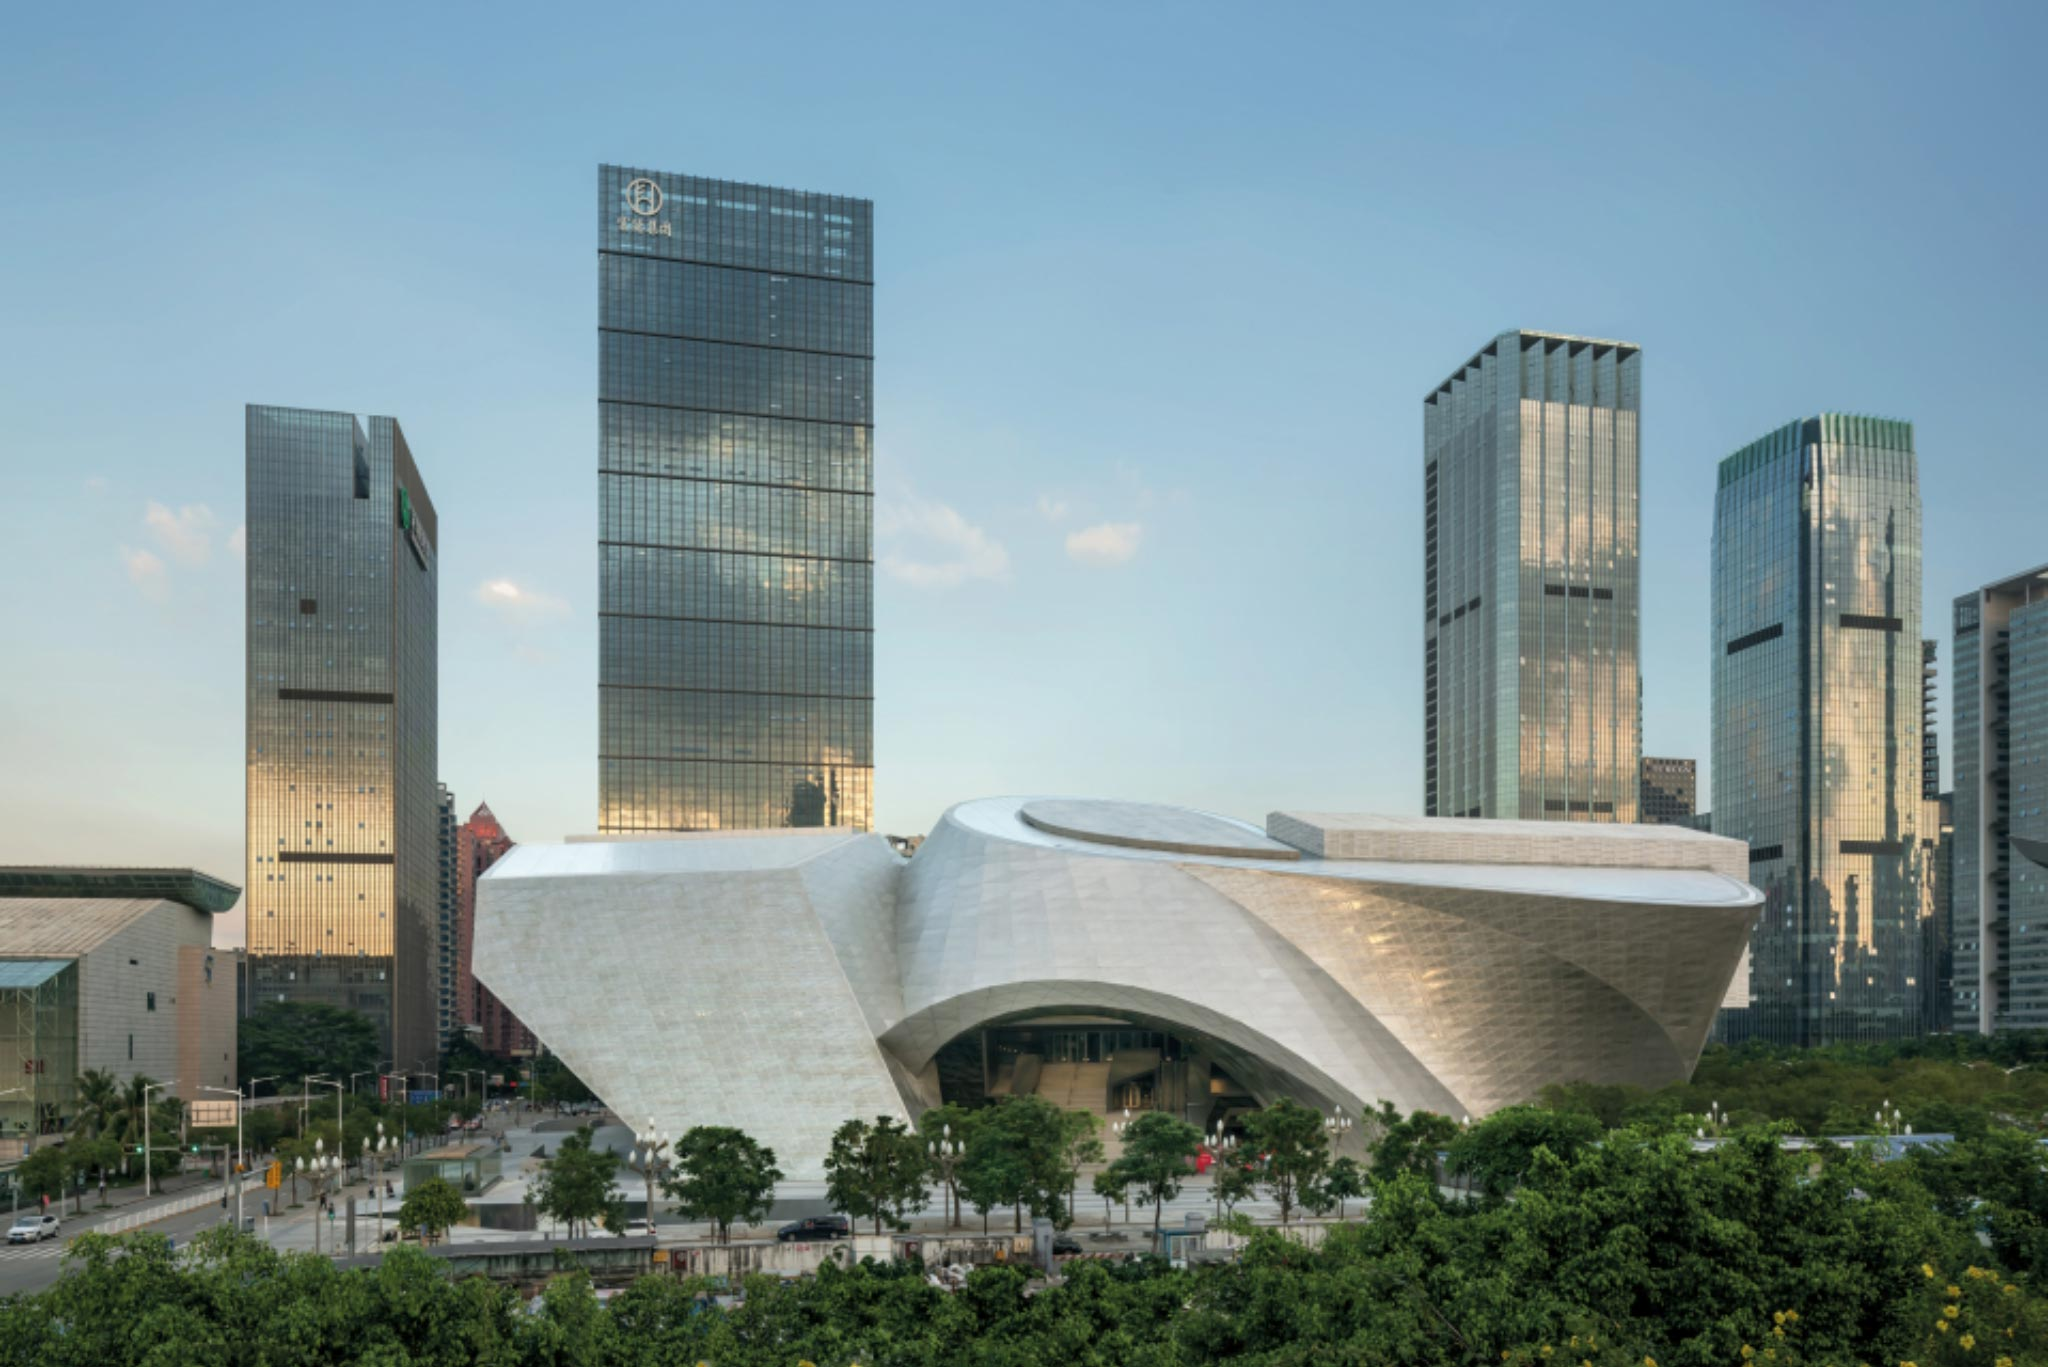 Museum of Contemporary Art & Planning Exhibition, Shenzhen, China: photo credit © Duccio Malagamba